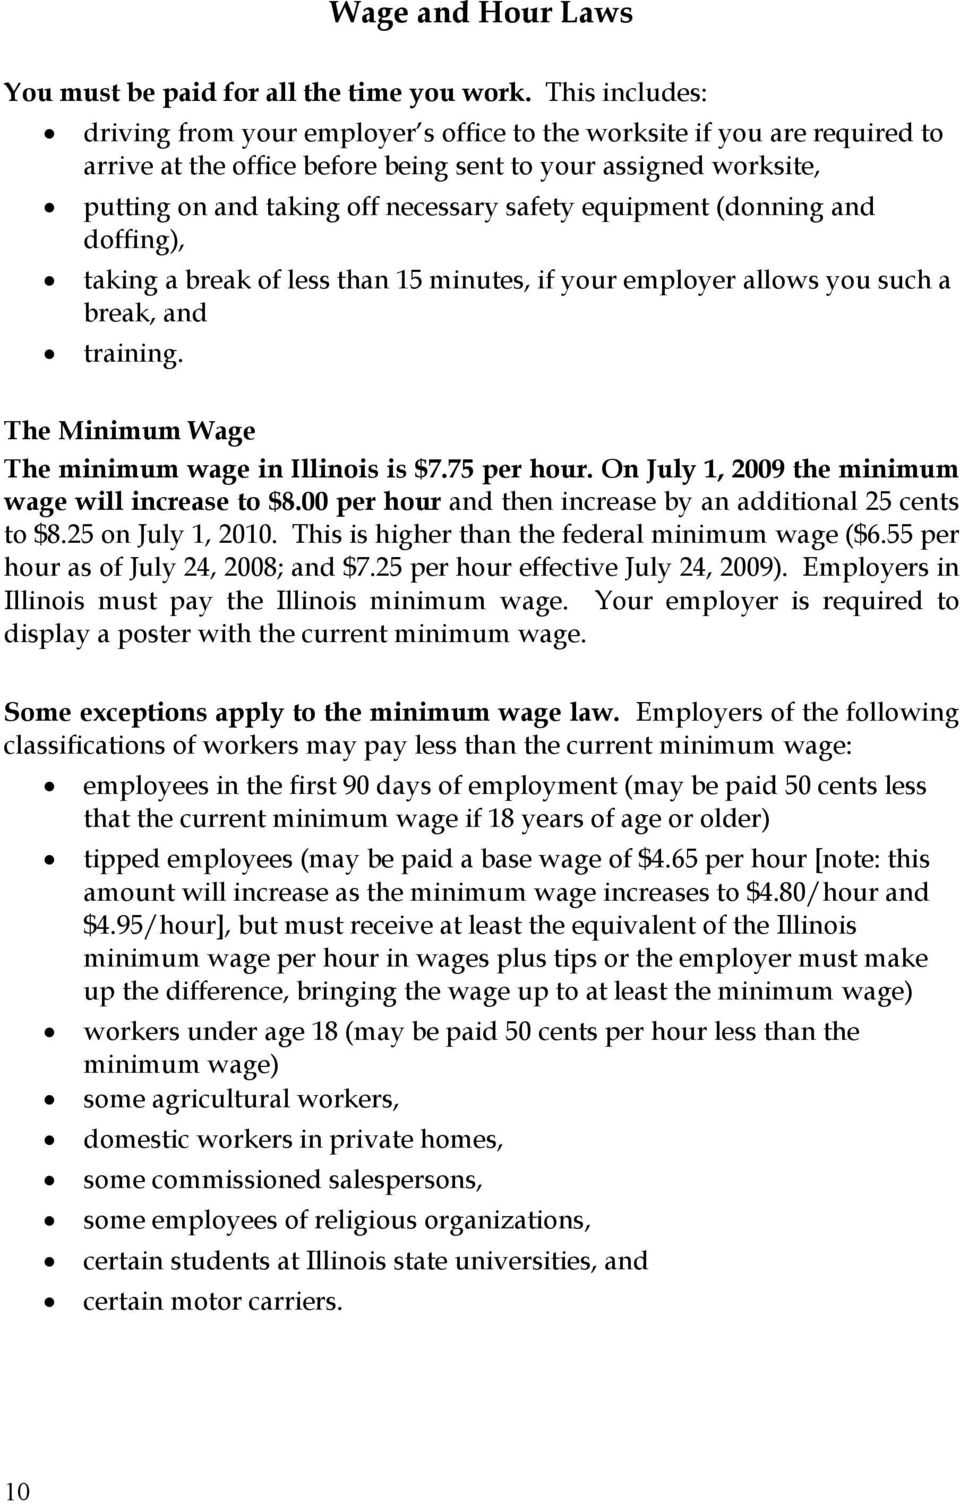 equipment (donning and doffing), taking a break of less than 15 minutes, if your employer allows you such a break, and training. The Minimum Wage The minimum wage in Illinois is $7.75 per hour.